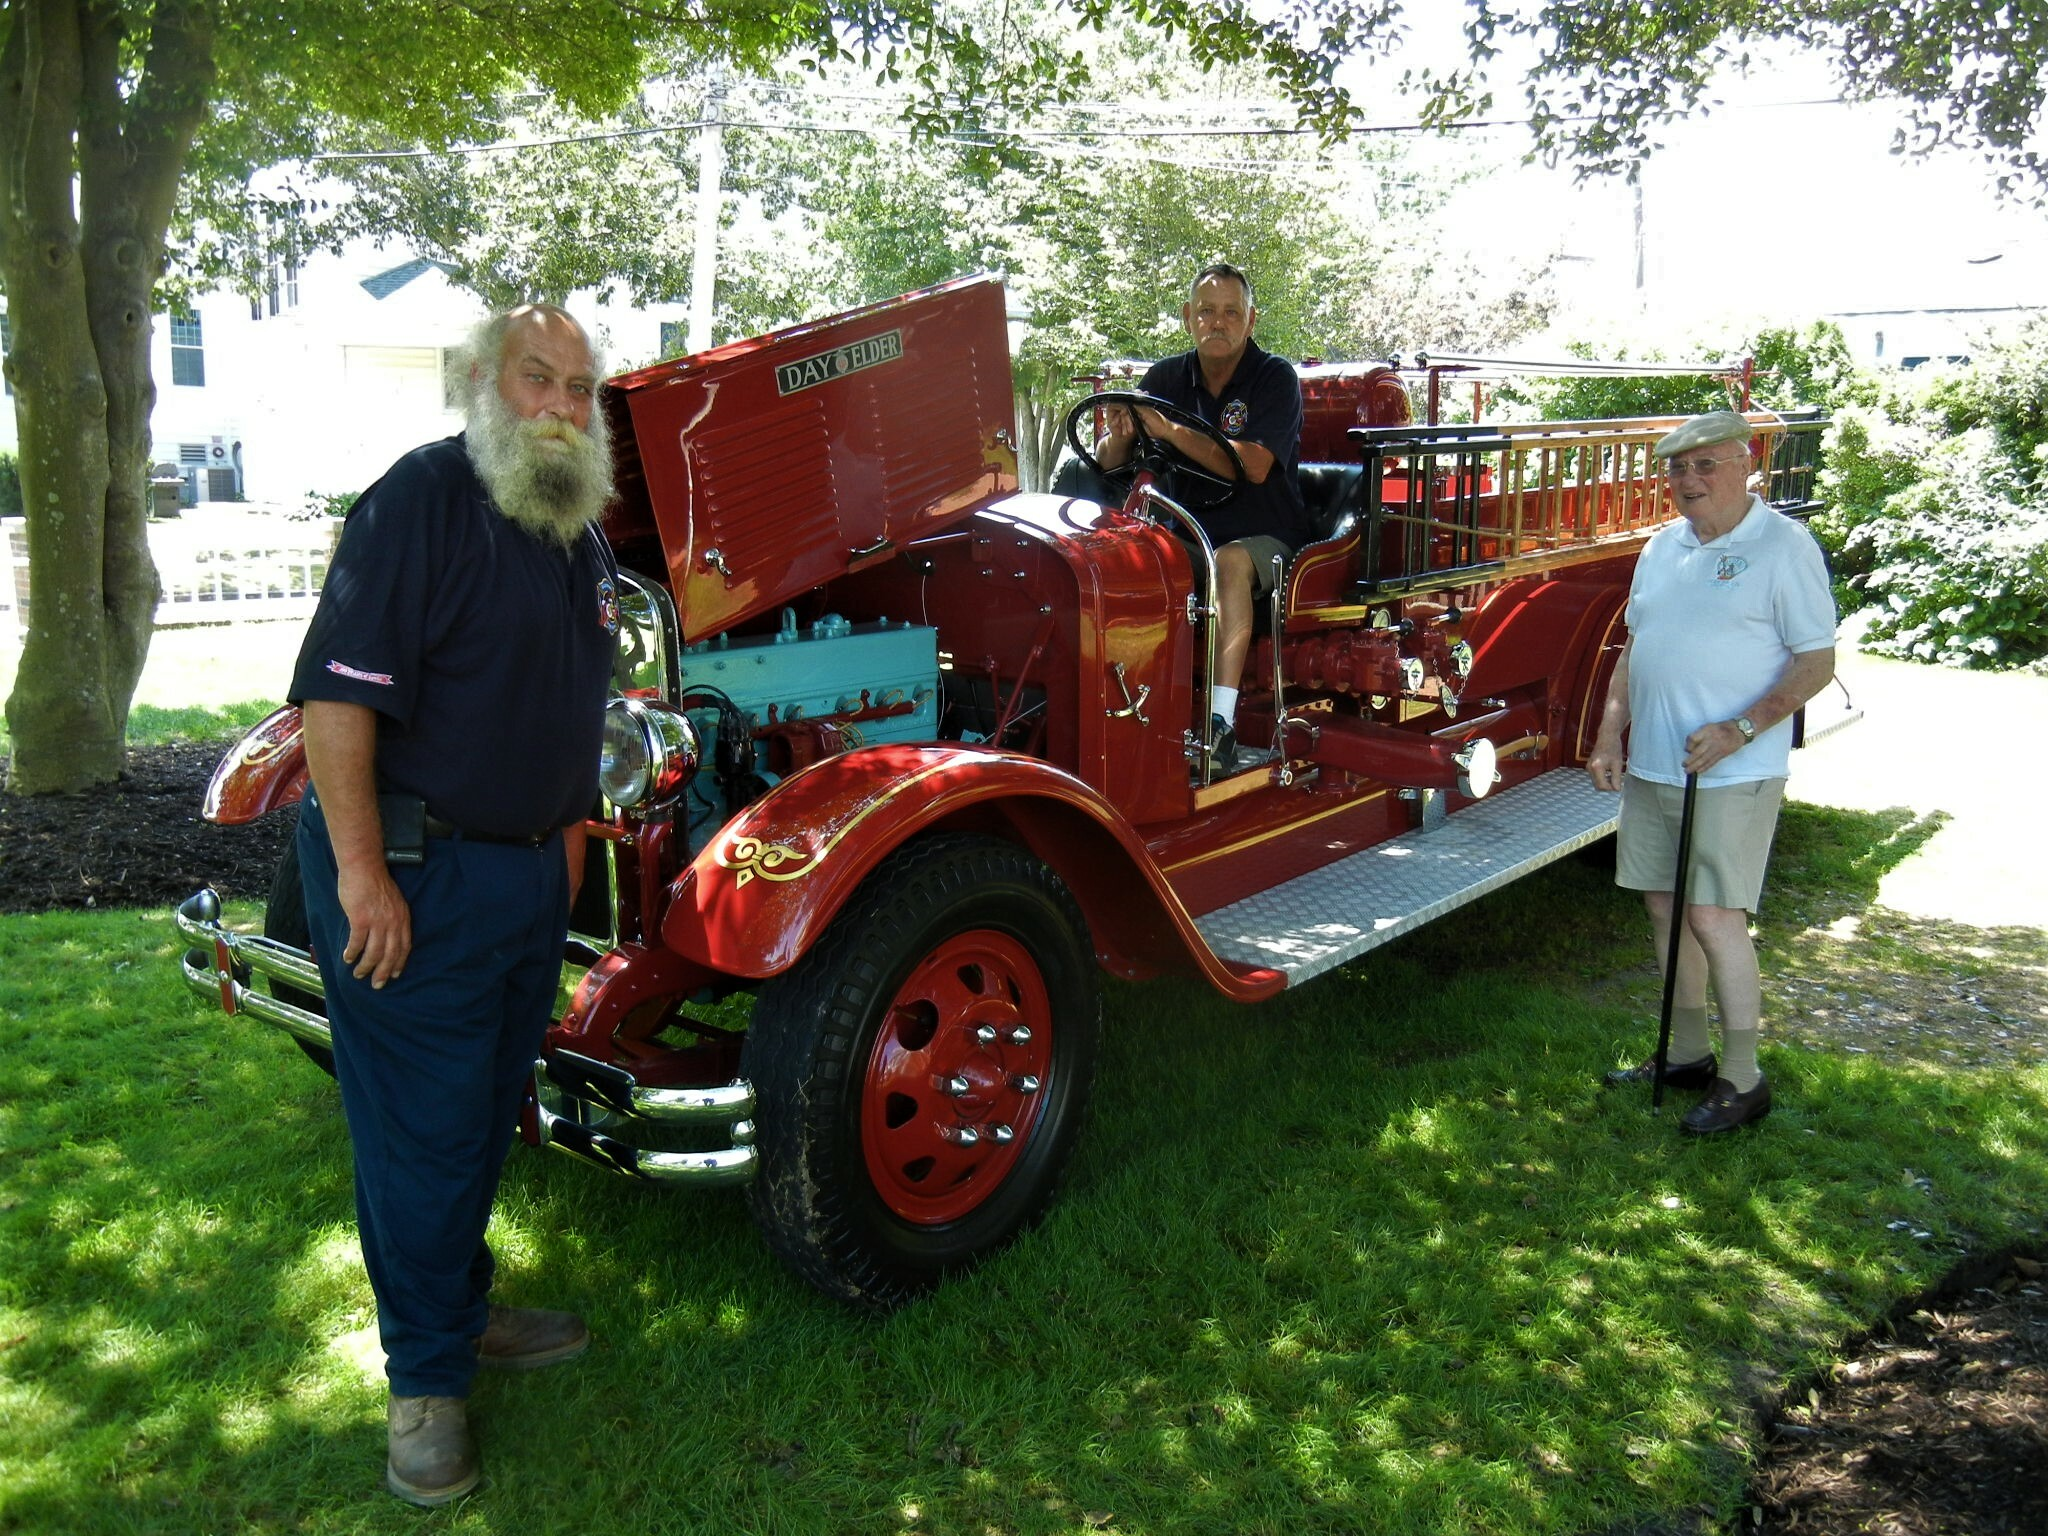 Volunteers with one of the antique fire trucks on display in 2018.